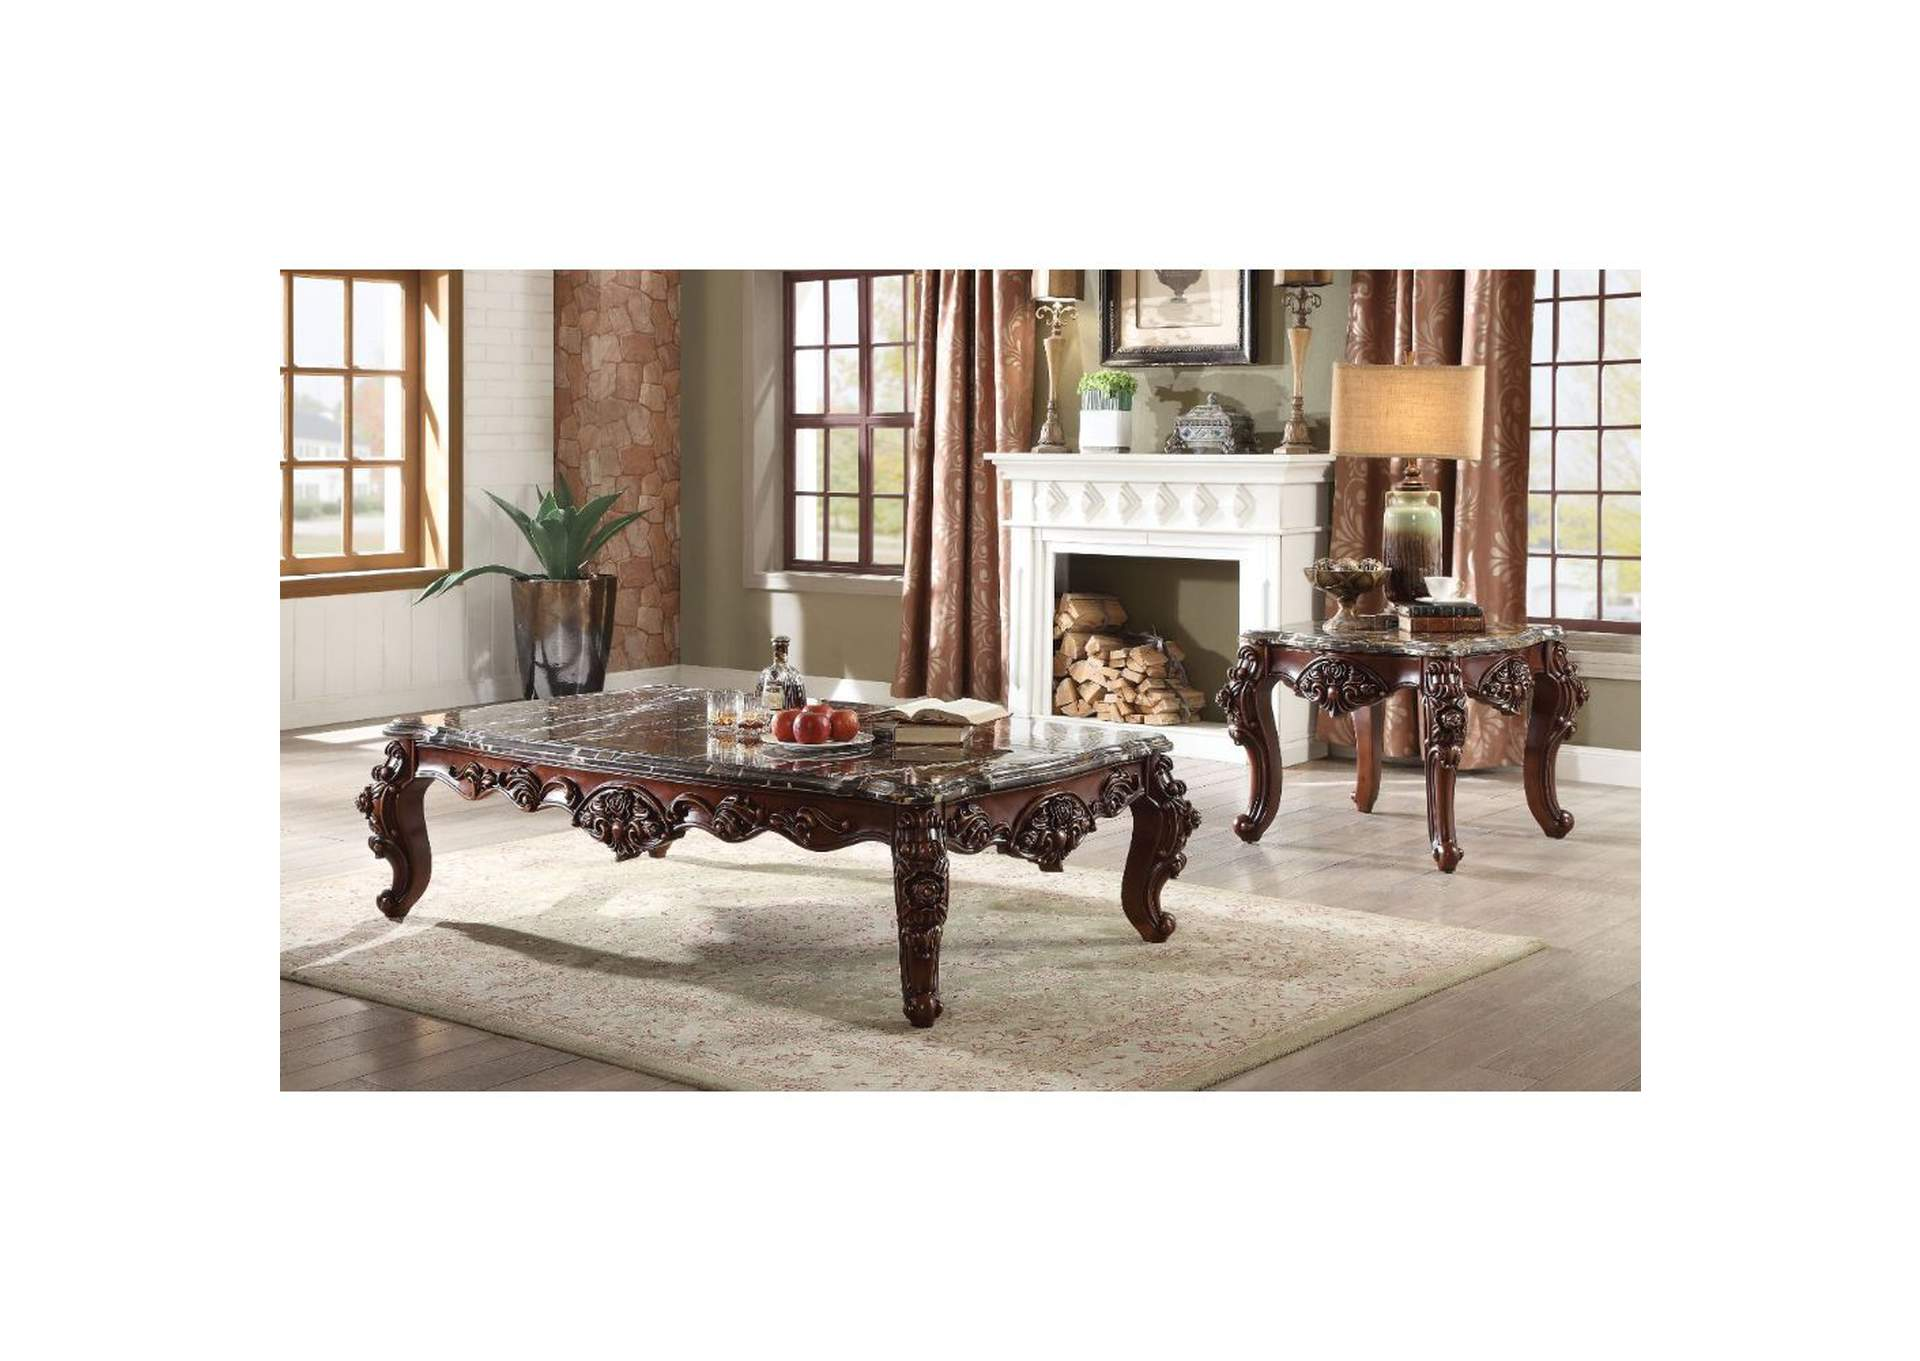 Forsythia Marble & Walnut Coffee Table,Acme